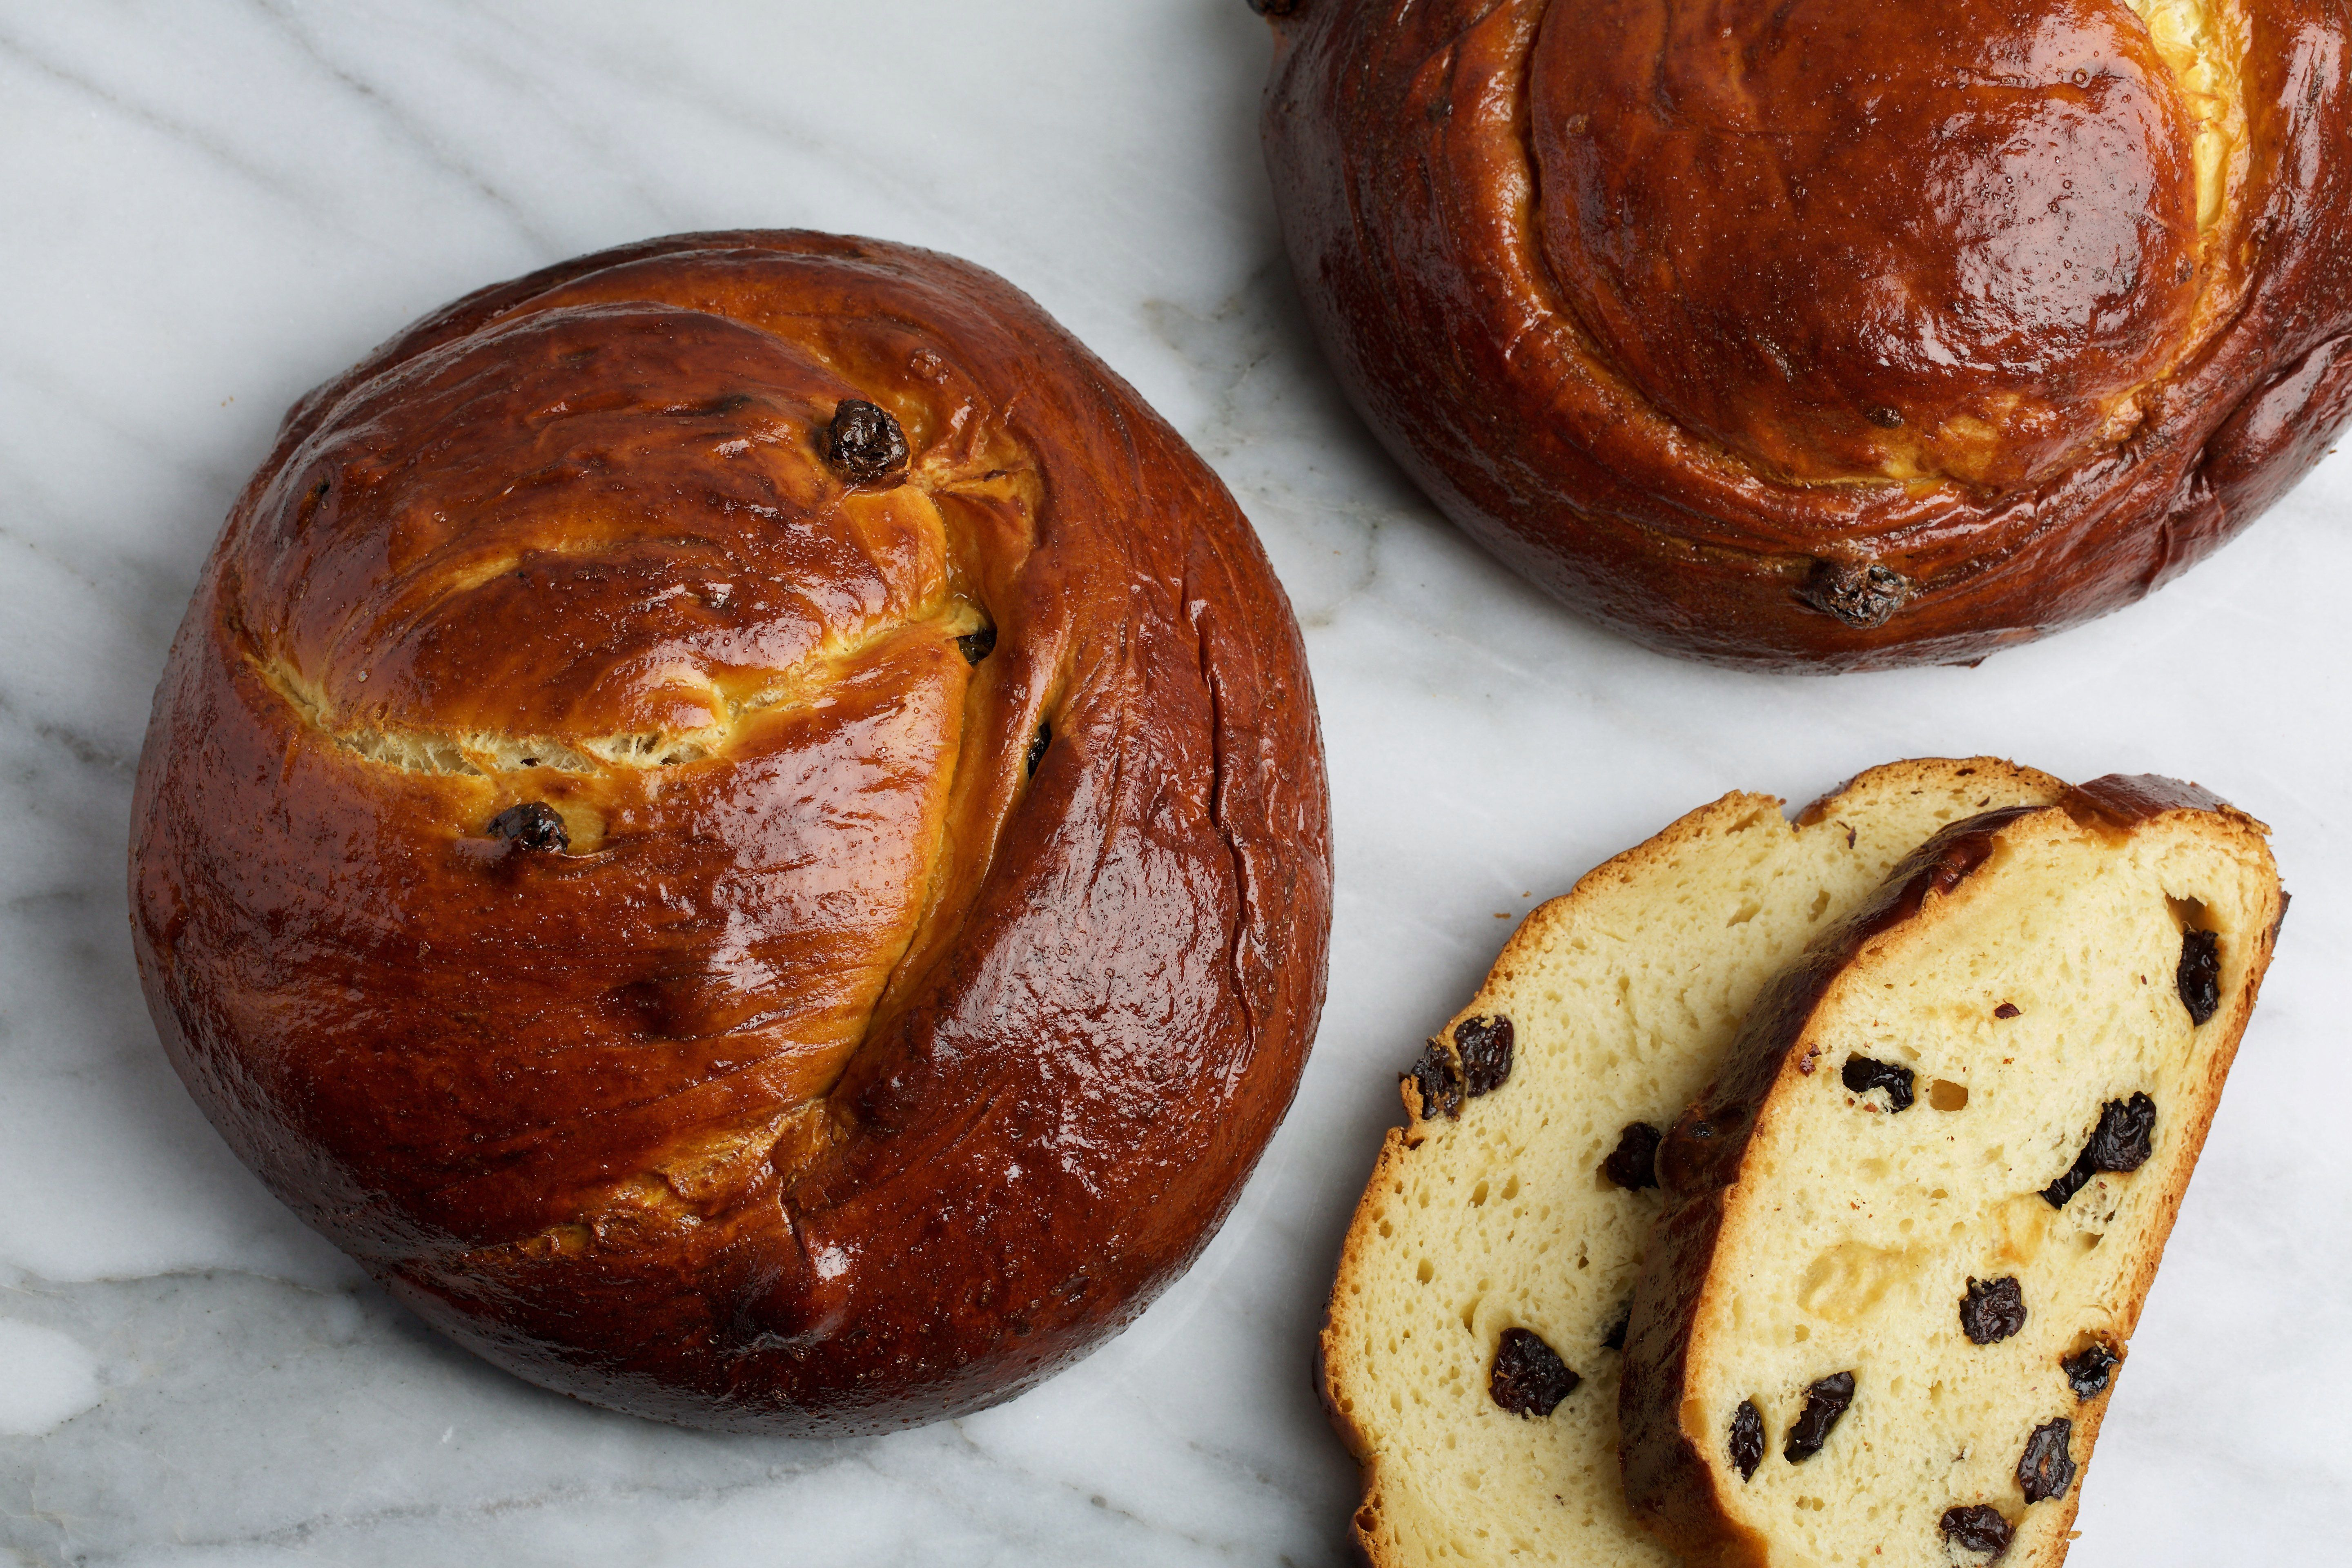 Traditional Rosh Hashanah foods includeapples and honey, raisin challah, honey cake and pomegranate.